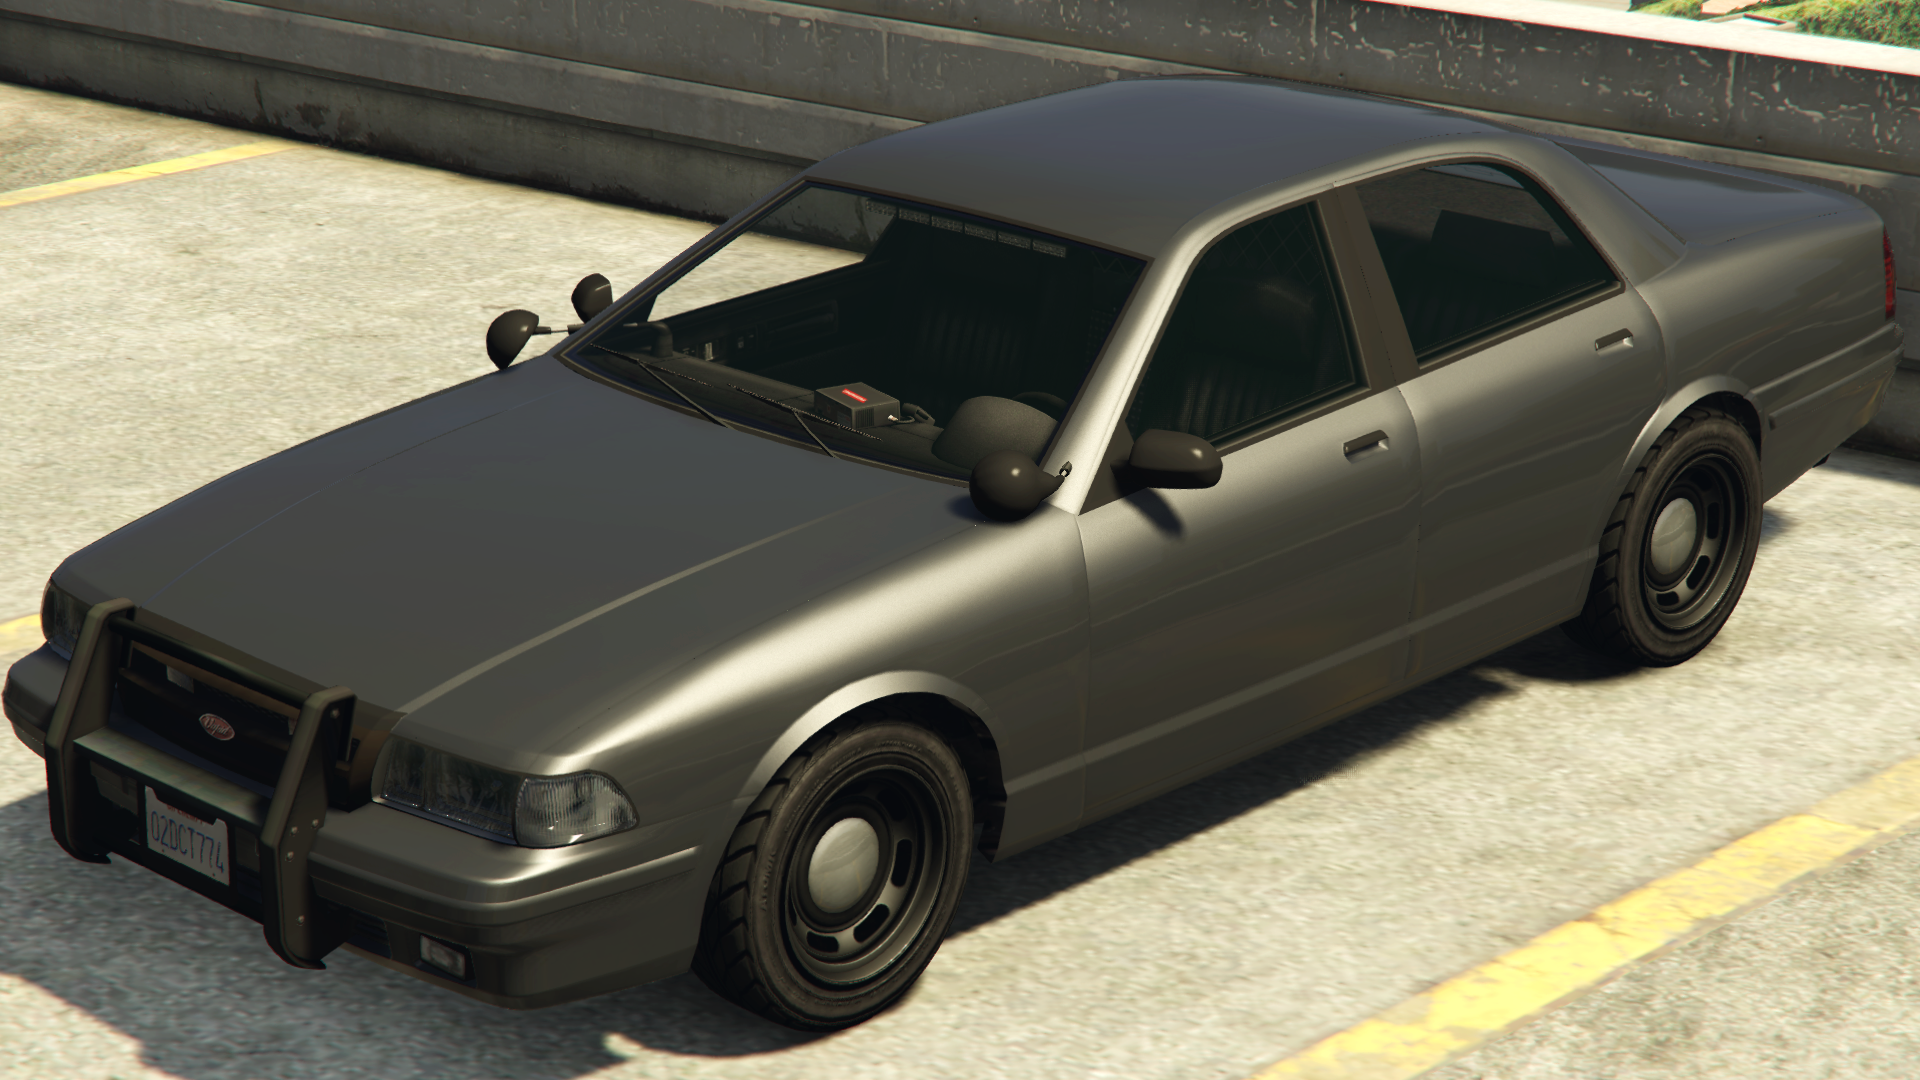 Unmarked Cruiser | GTA Wiki | FANDOM powered by Wikia